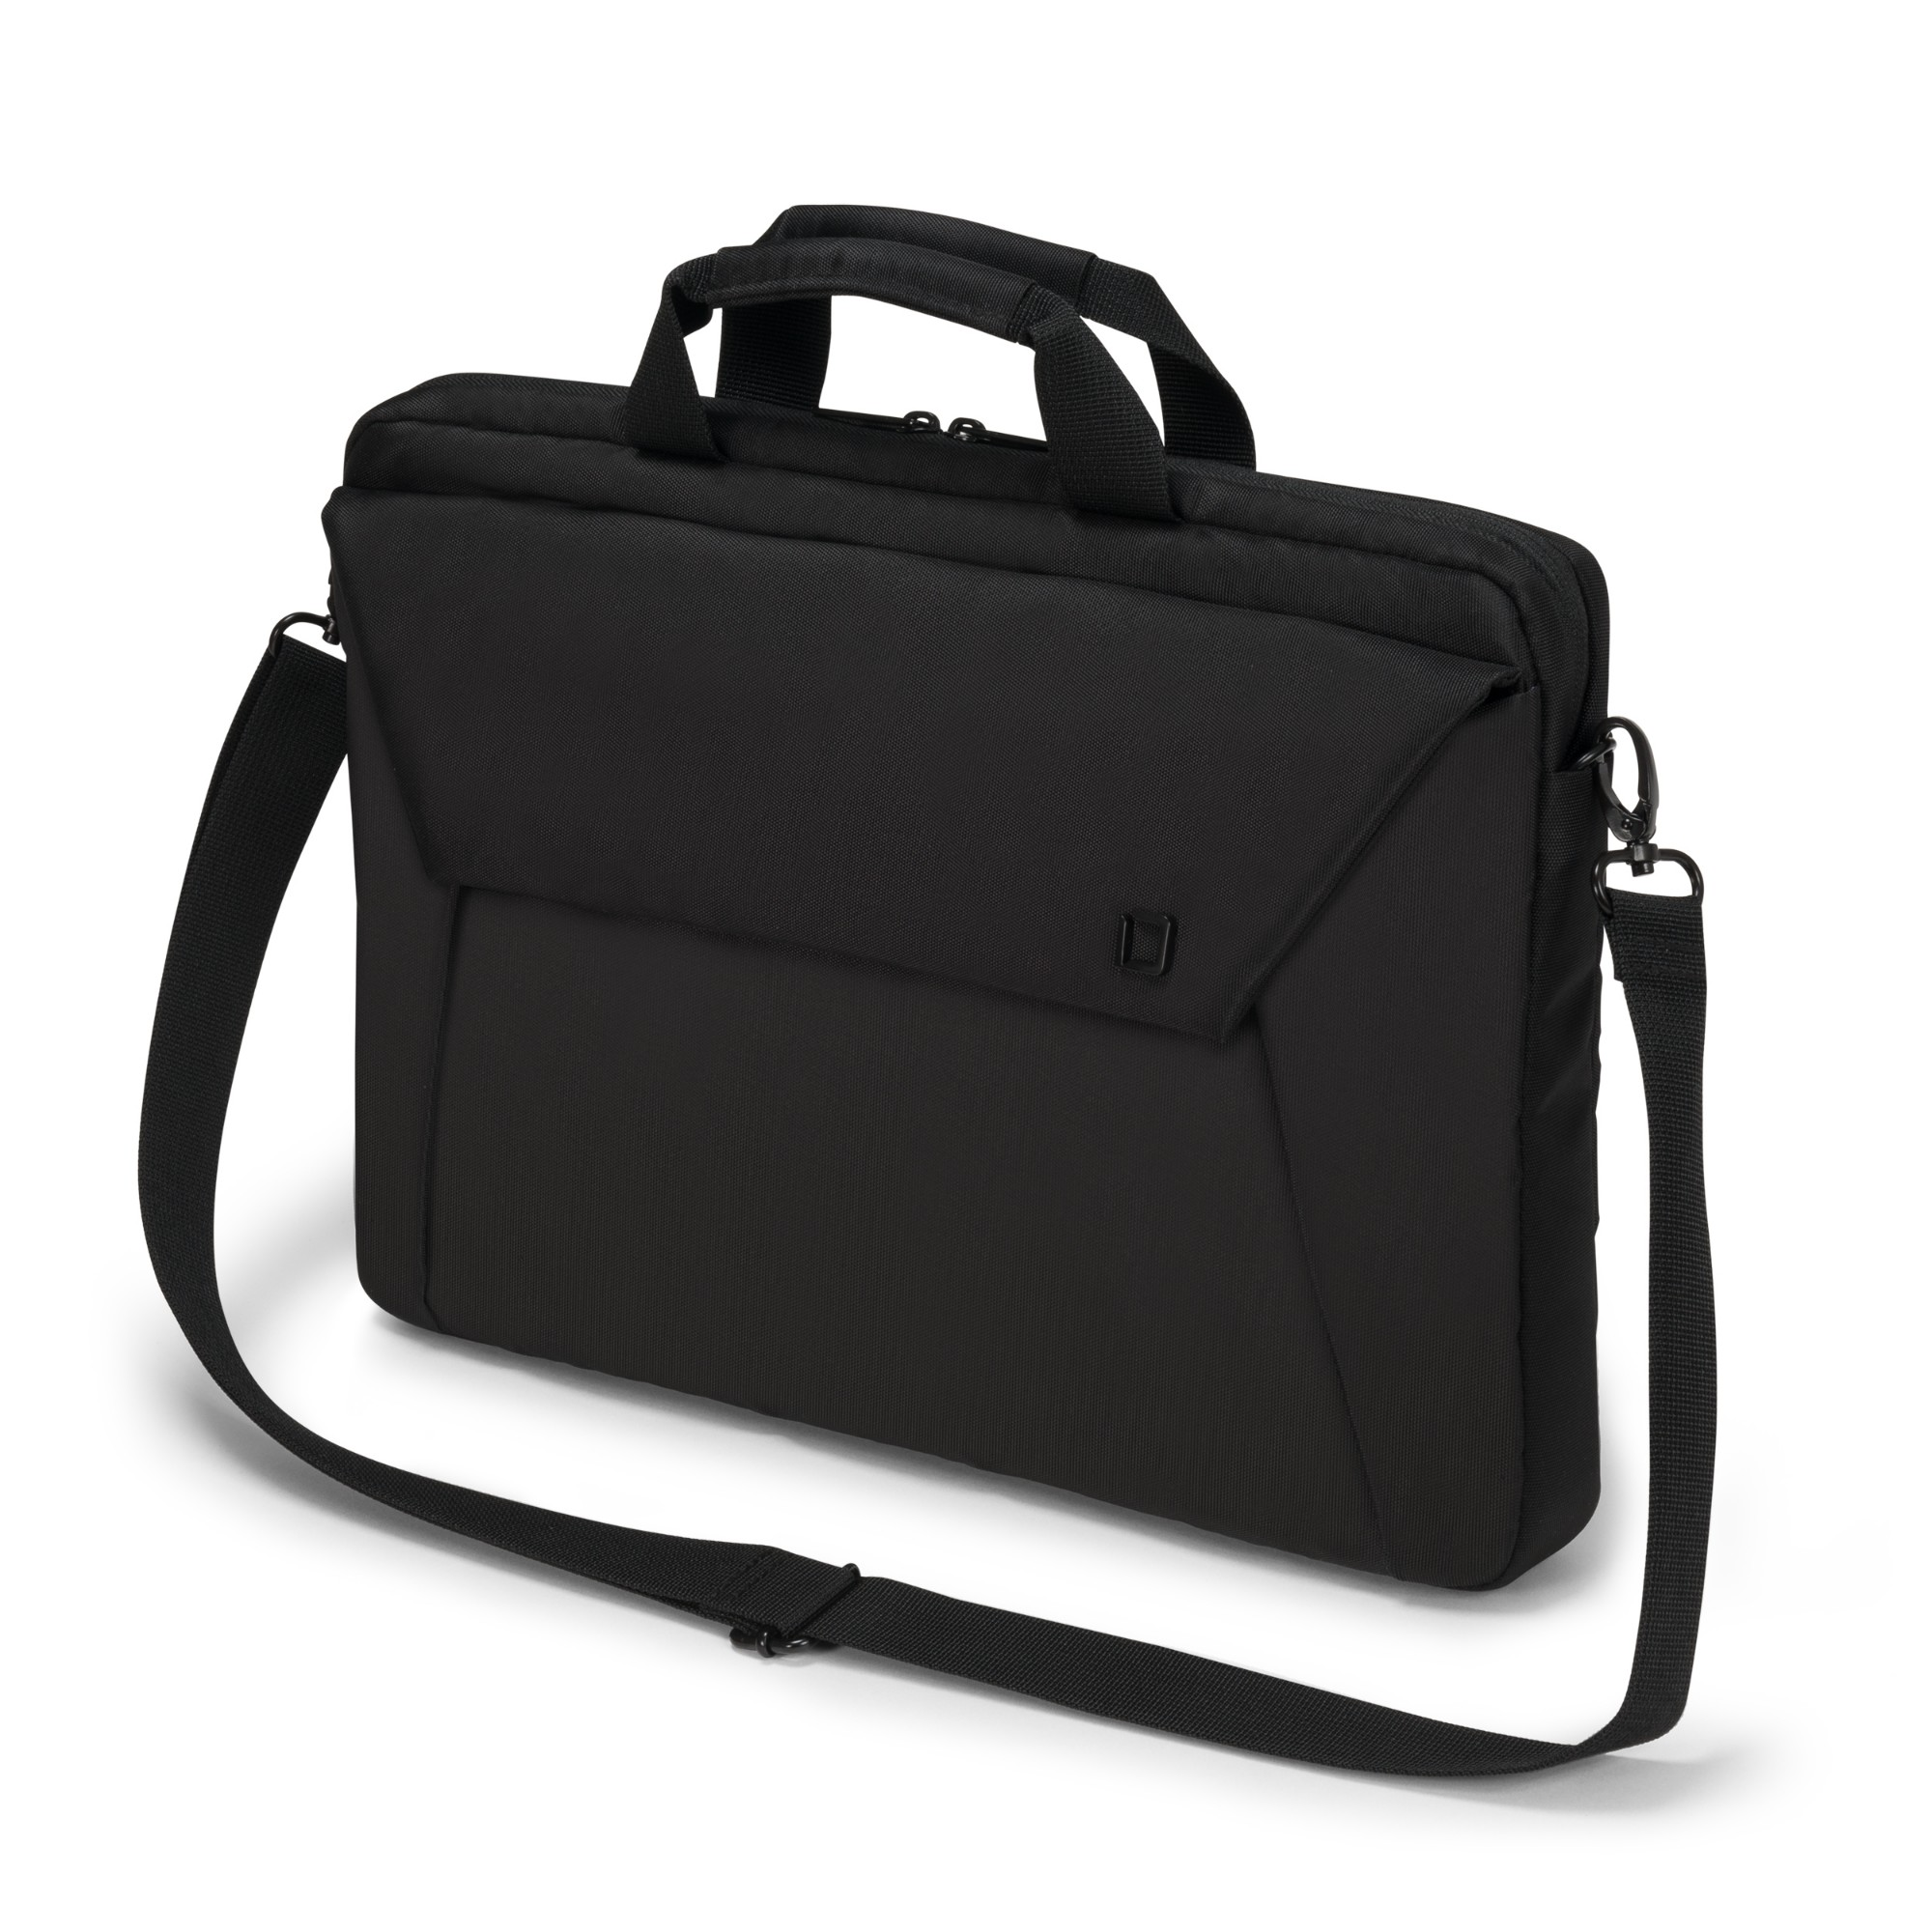 "Dicota Slim Case 39.6 cm (15.6"") Briefcase Black"